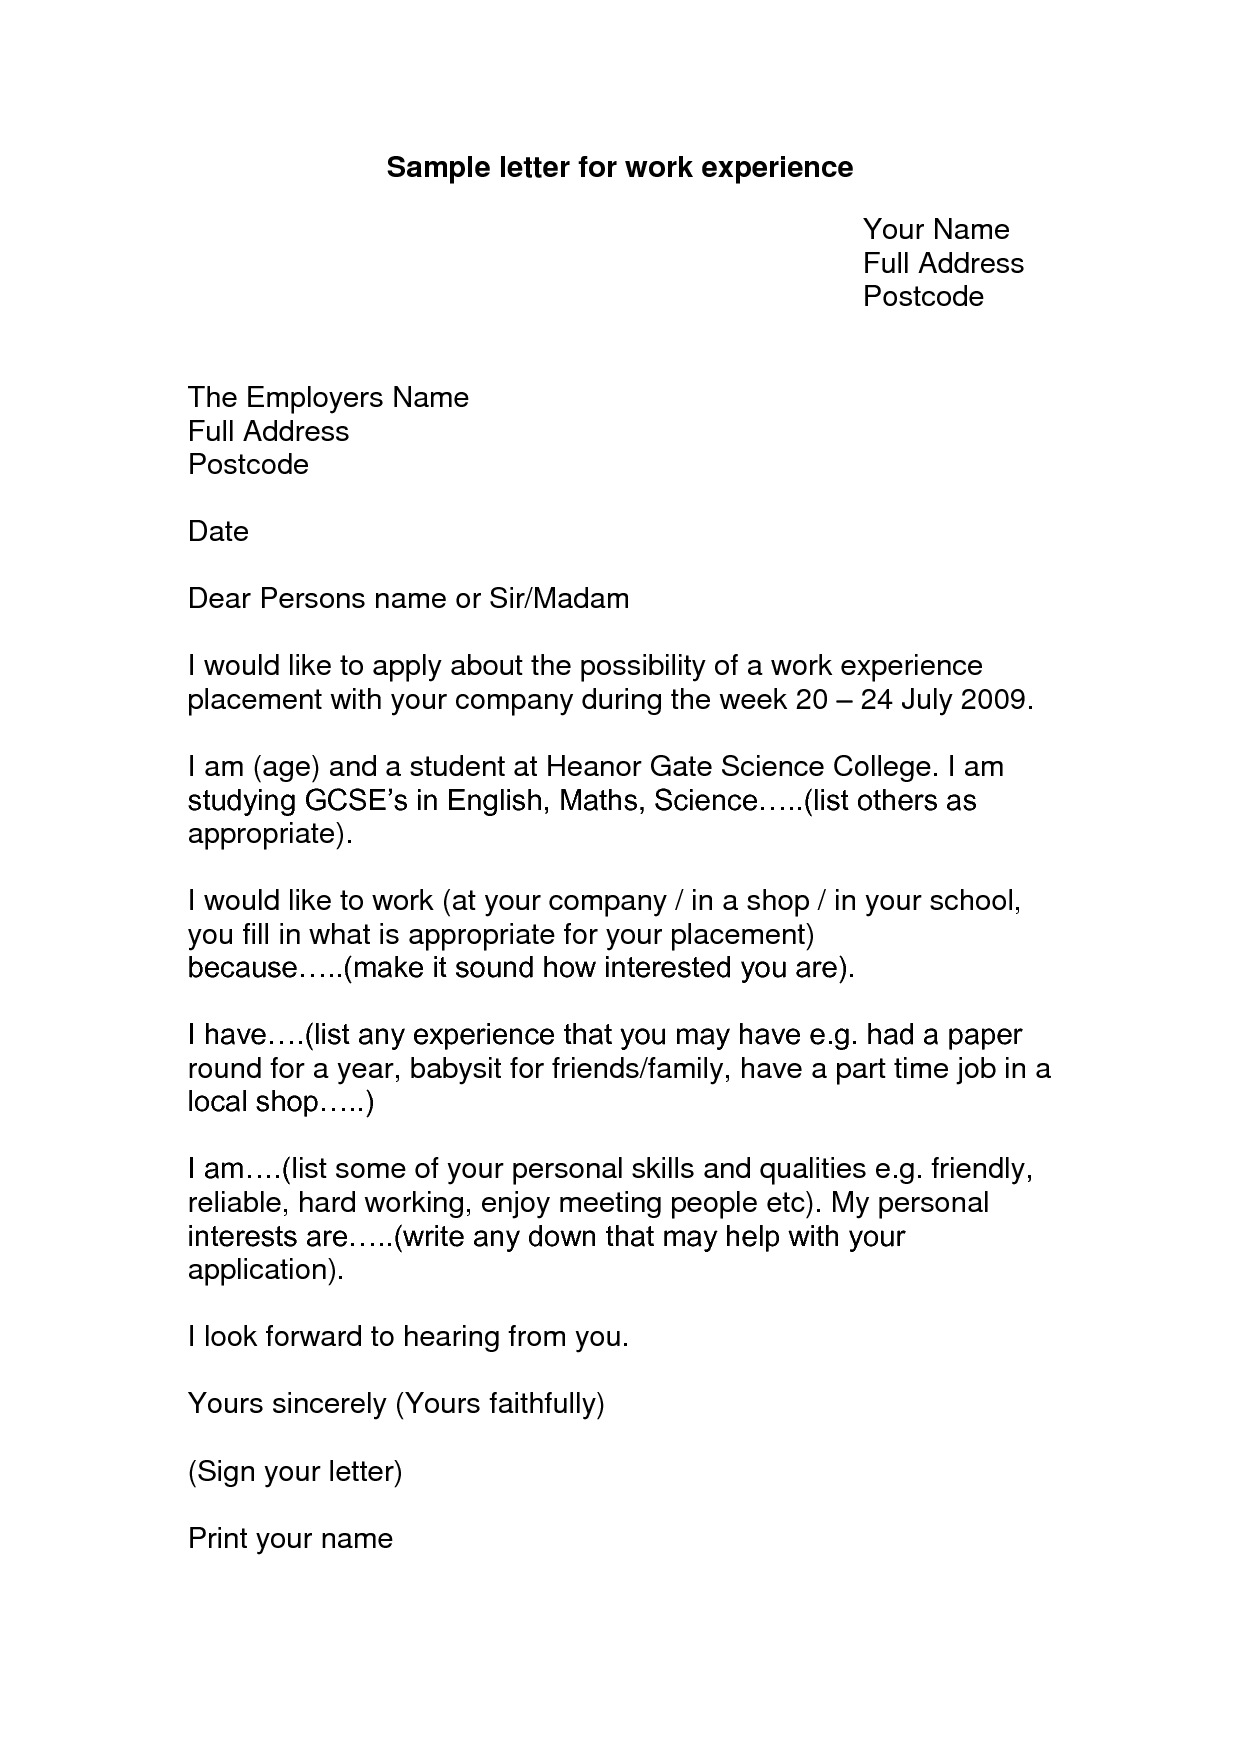 Application Letter For Work Experience Template